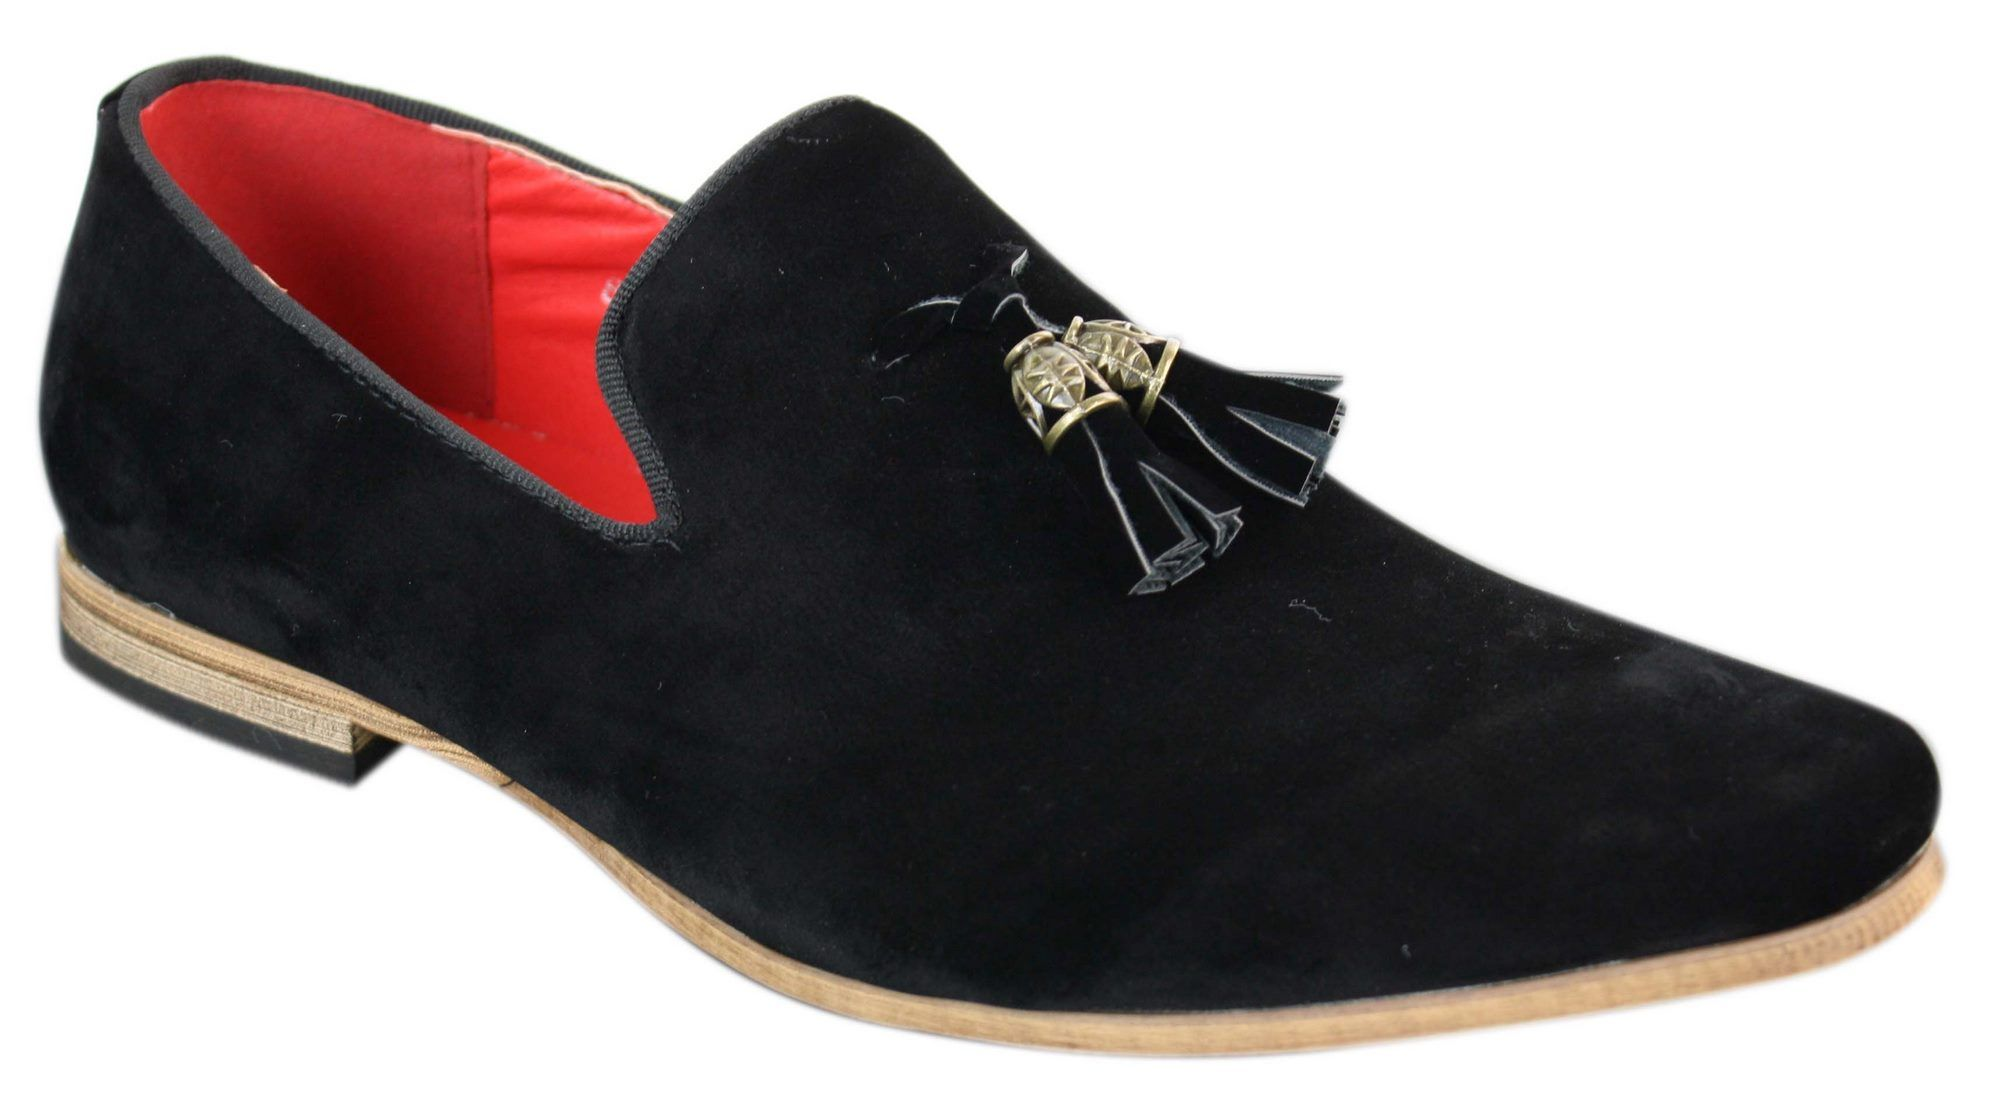 Mens Suede Leather PU Slip On Driving